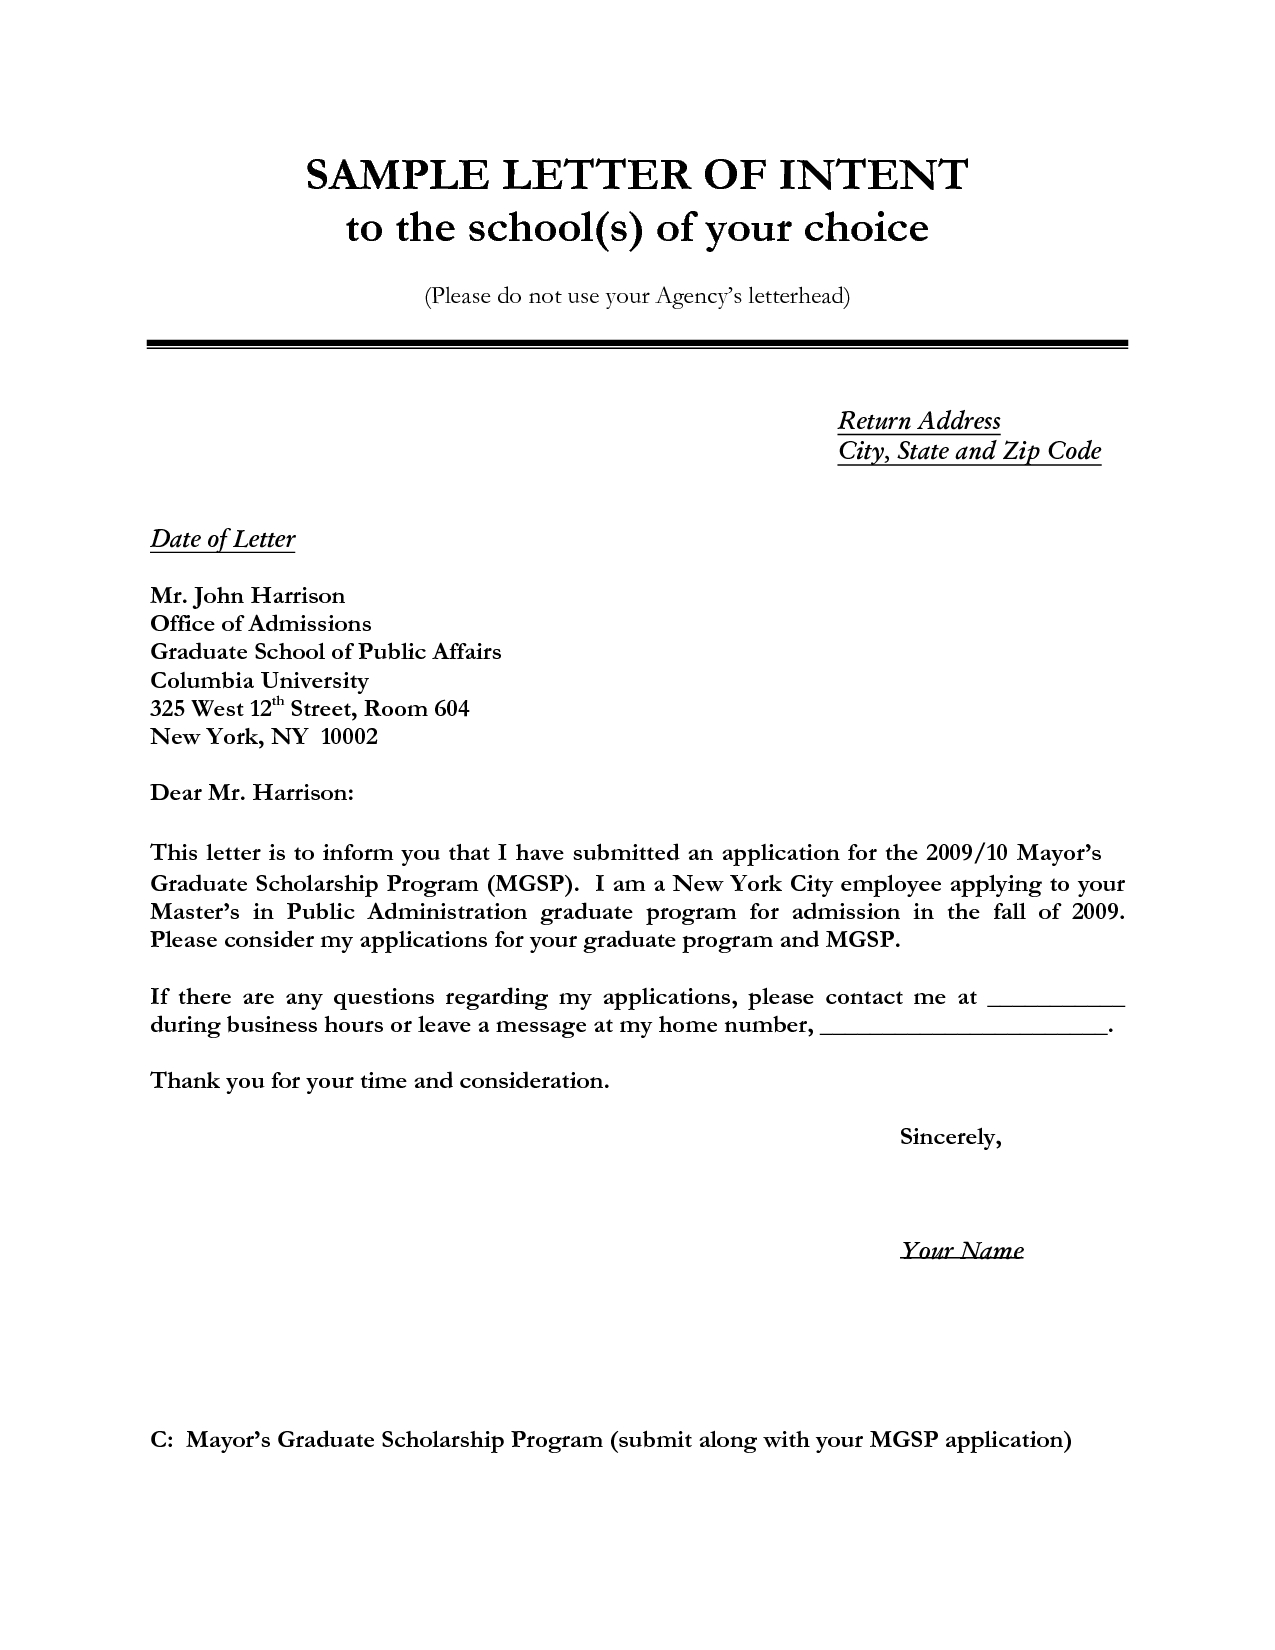 Joint Venture Letter Of Intent Template - Letter Of Intent Sample